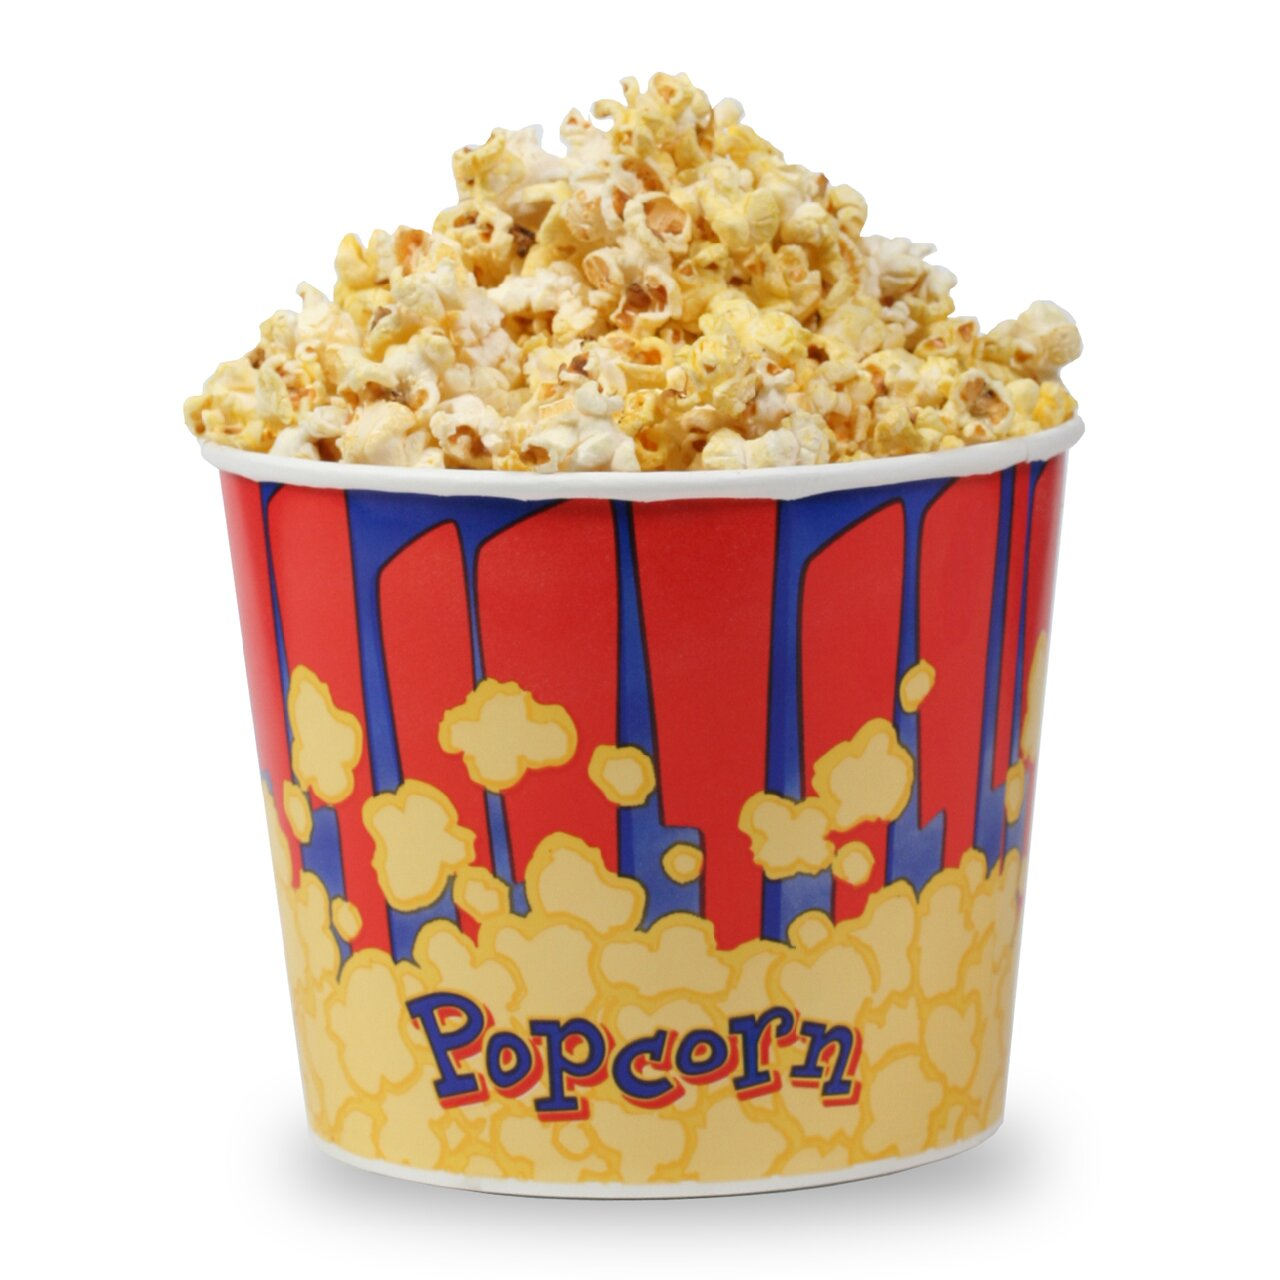 Great Northern Popcorn Movie Theater Popcorn Bucket  : 25MovieTheaterPopcornBucket from www.wayfair.com size 1280 x 1280 jpeg 237kB